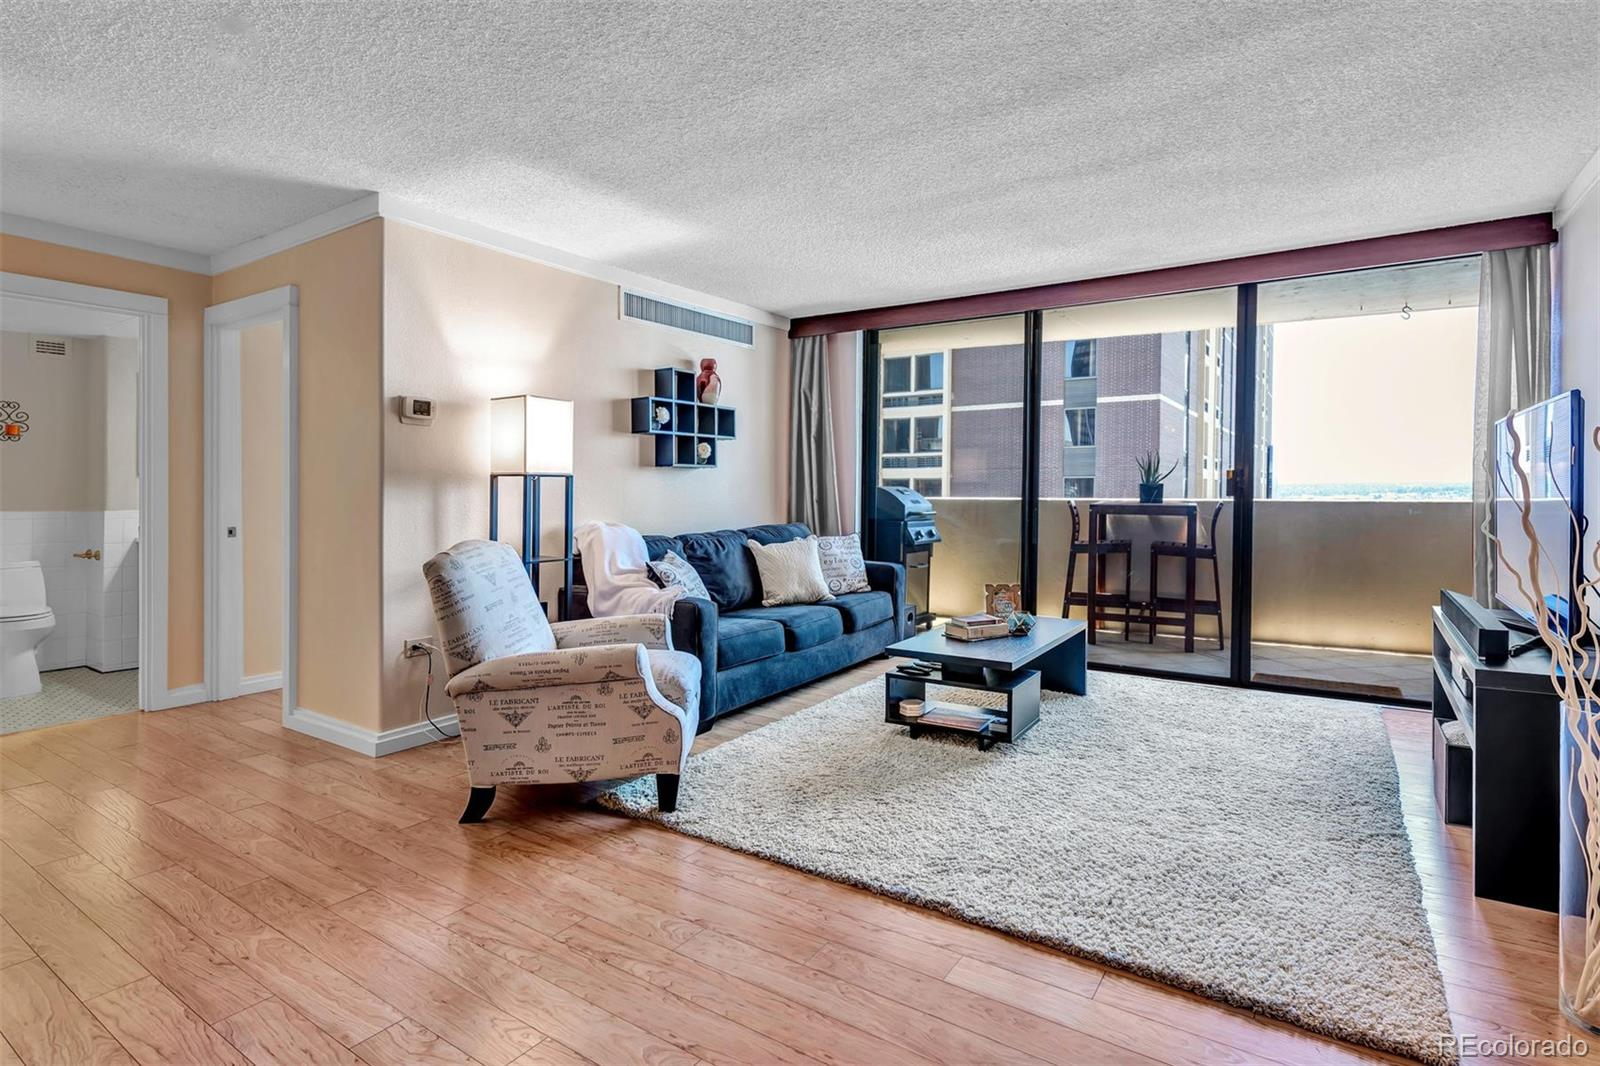 """Chic hideaway in downtown Denver! Just steps from the best that Denver has to offer - walk to the Performing Arts Complex, Historic Larimer Square and the 16th Street Mall - all of Denver is at your feet! Private and very quiet, this beautiful condo features gorgeous city and mountain views, and has been completely updated with sleek, high end finishes.  Featuring a custom, craftsman style wood kitchen with sleek quartz counters, stainless steel sink, backsplash and appliances (incl. wine fridge), clever storage behind soft close drawers and doors, and a large walk in pantry - the custom kitchen extends to create a comfortable dining space with bar seating for 4 and plenty of built in storage. The sunny living room sits easily between the kitchen and the private patio, where you can dine al fresco while enjoying gorgeous Colorado sunsets night after night, with west facing mountain views that include Mt. Evans and Red Rocks for the ultimate """"WOW"""" factor!  This chic condo also features two updated tile bathrooms and a Master Ensuite that is private and quiet.  The second bedroom includes a Murphy Bed built in the same craftsman style as the kitchen, and functions well as a combination bedroom/home office. Upgraded flooring, lighting (all on dimmer switches) and plumbing fixtures, and 3 separate climate control zones complete this sweet home, and there is plenty of storage to be found throughout. Brooks Tower features 24 hour building services including maintenance, front desk, and a garage attendant, plus a pool, workout facility, business/conference room, and laundry. This condo makes the perfect second city or vacation home, or is perfect for a first step into homeownership - get ready to step out in style!"""